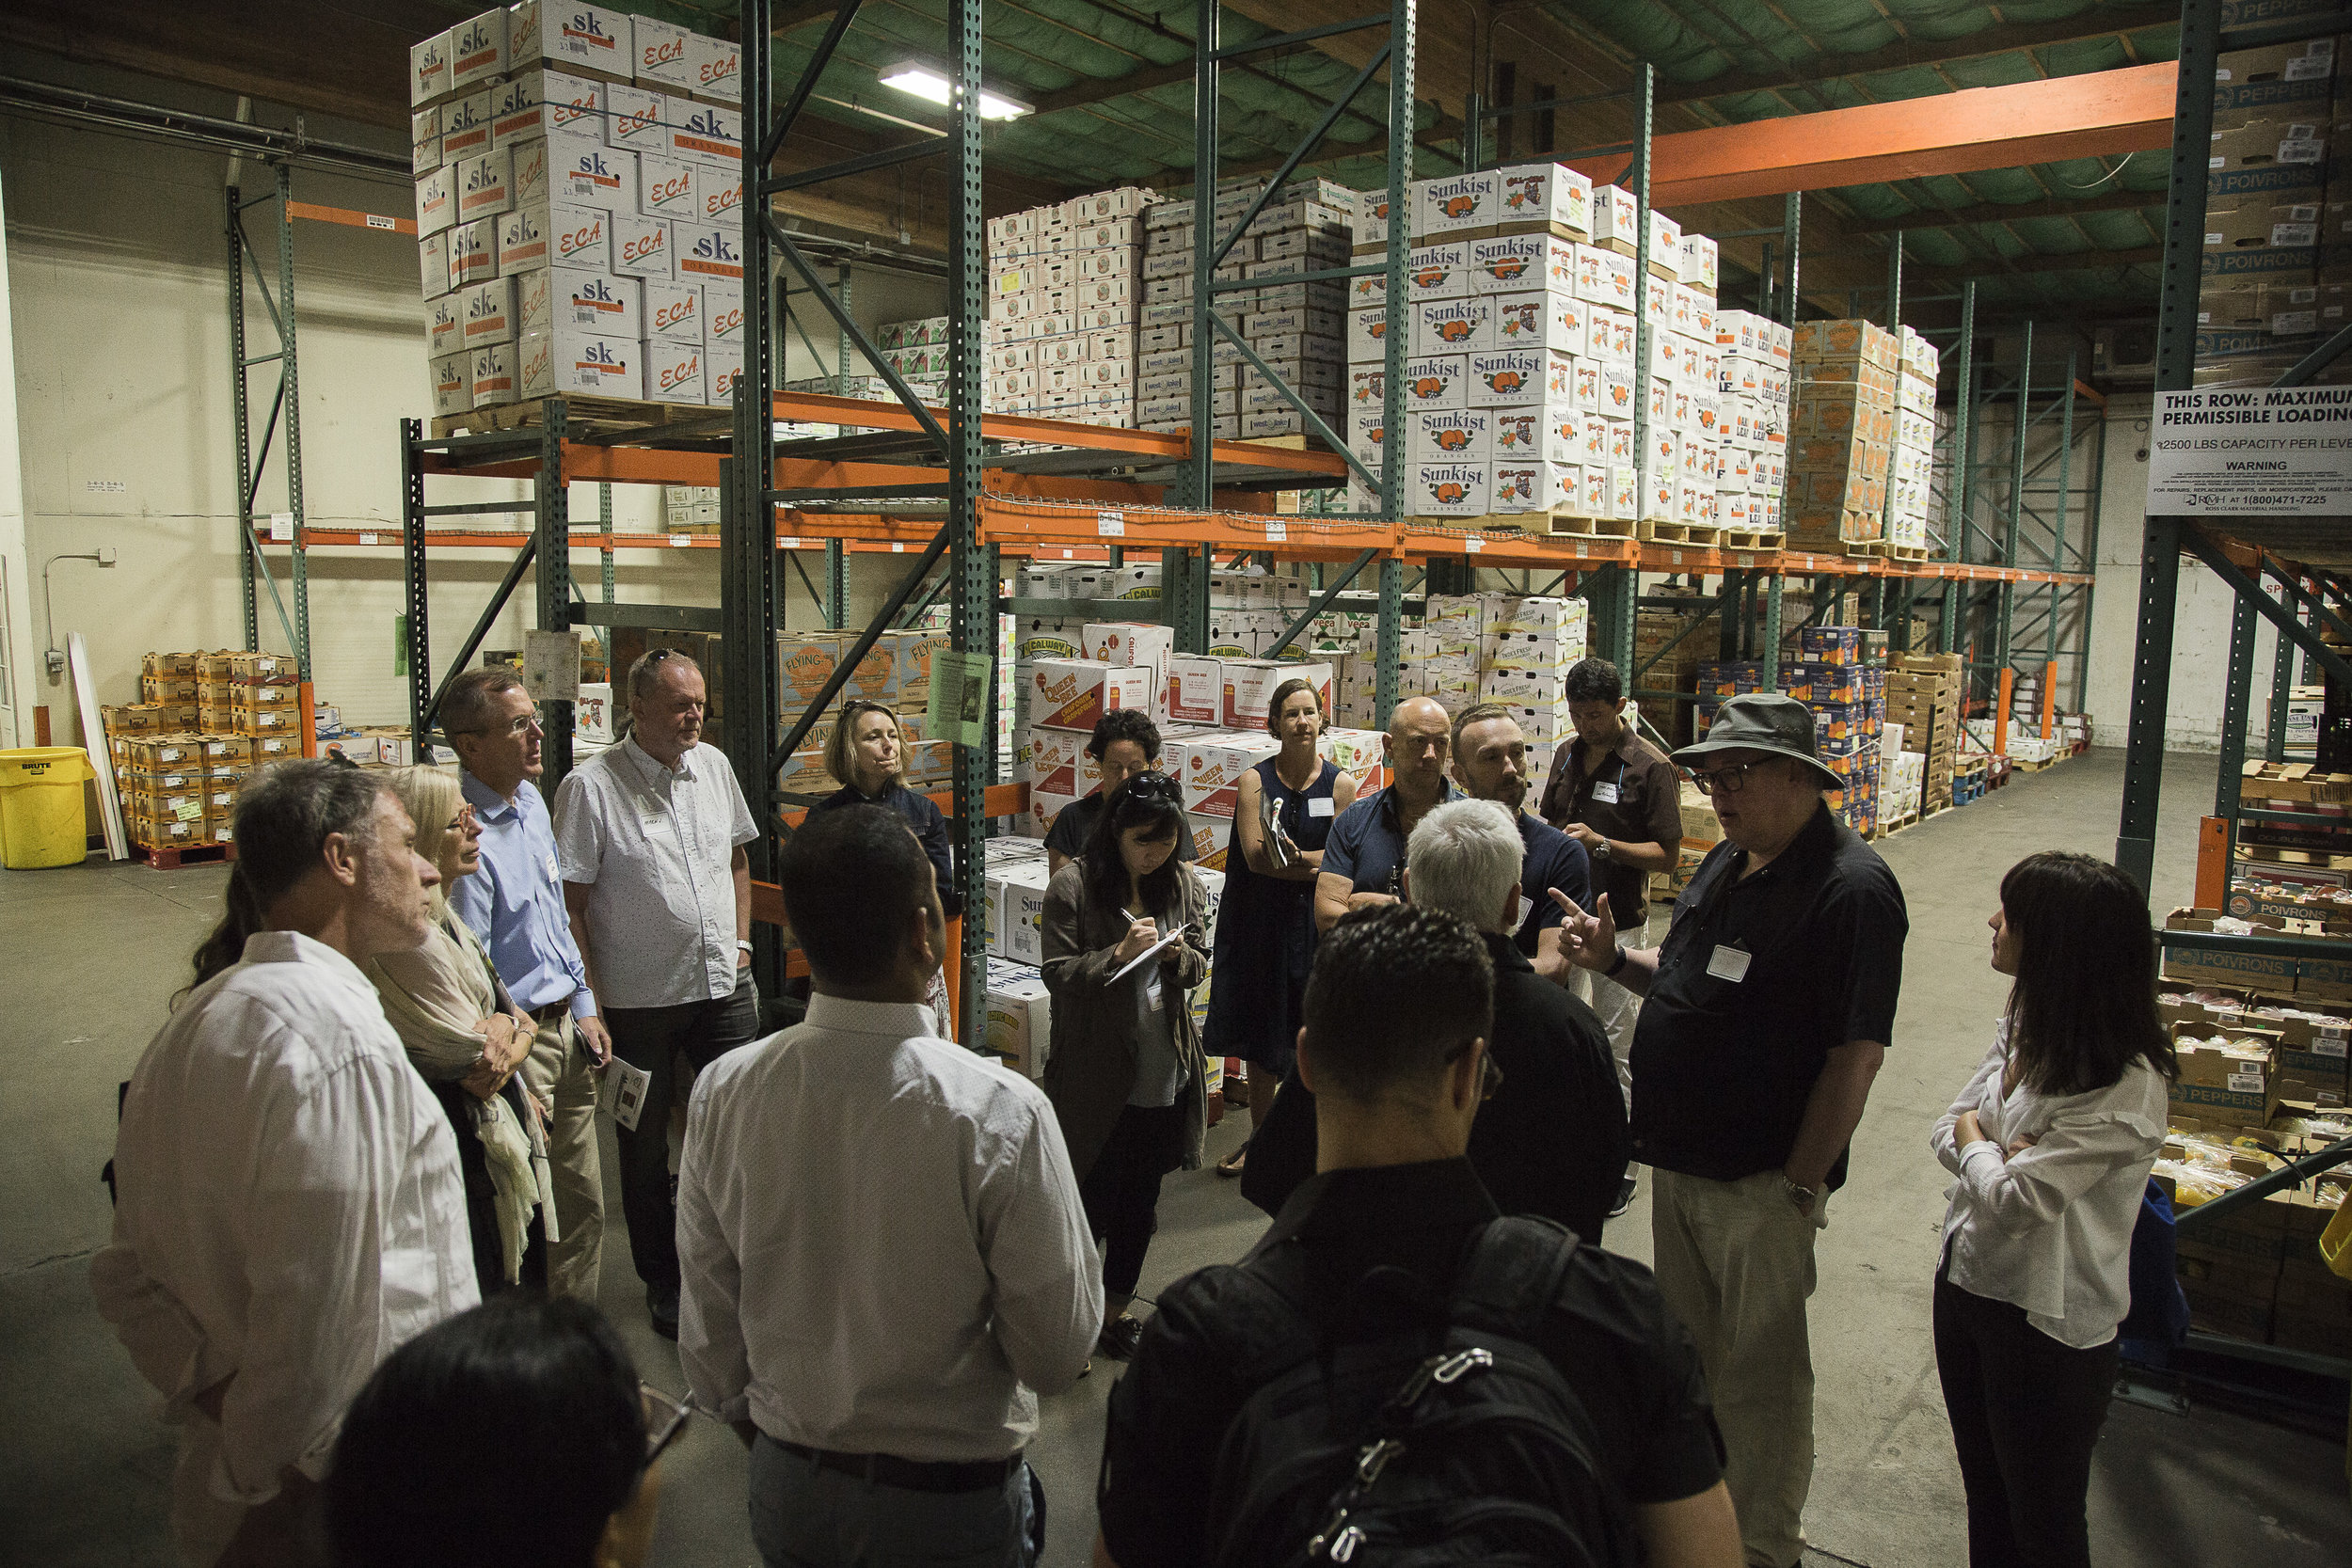 In July 2018 we visited General Produce Distribution Company in Sacramento, California. Photo by Steven Baumgartner.